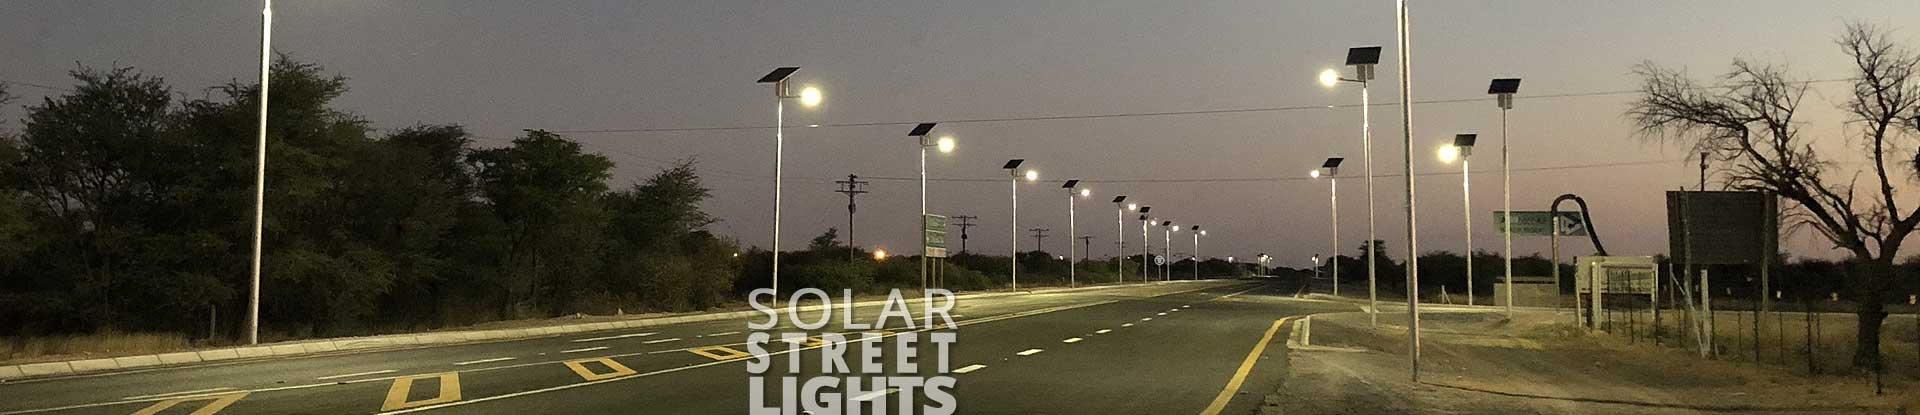 Solar Street Light System | Captain Polyplast Ltd.